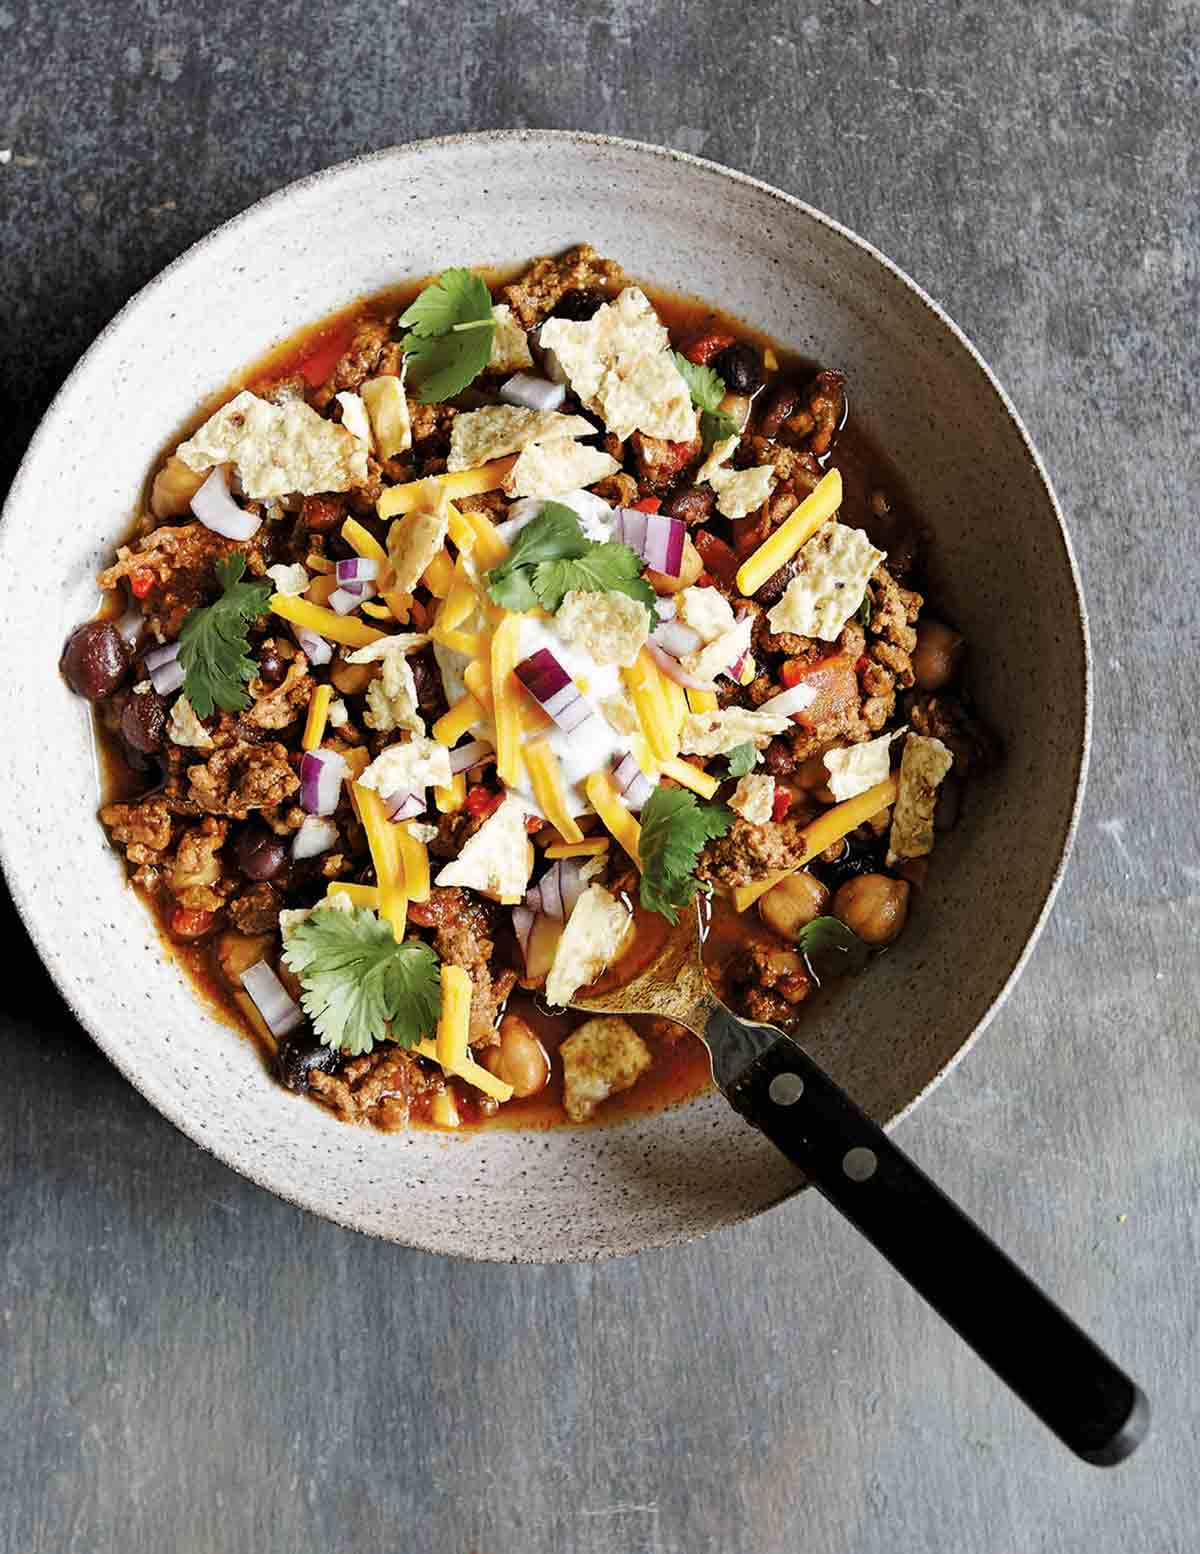 An earthenware bowl filled with slow cooker beef chili, topped with cheese, tortilla chips, and cilantro, with a spoon resting in it.